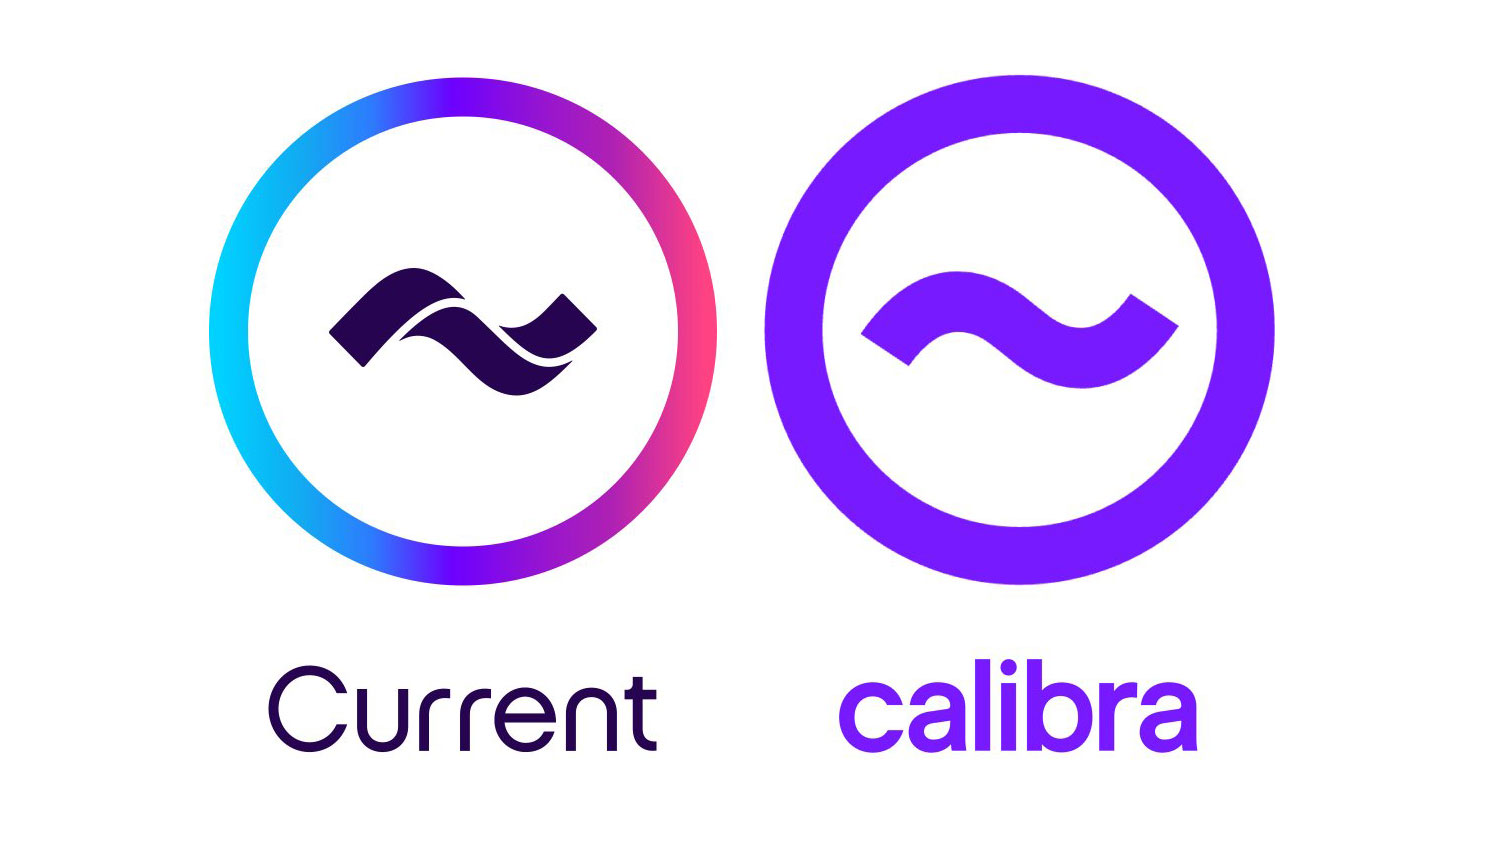 Facebook's Calibra logo looks suspiciously like the Current logo | Creative Bloq